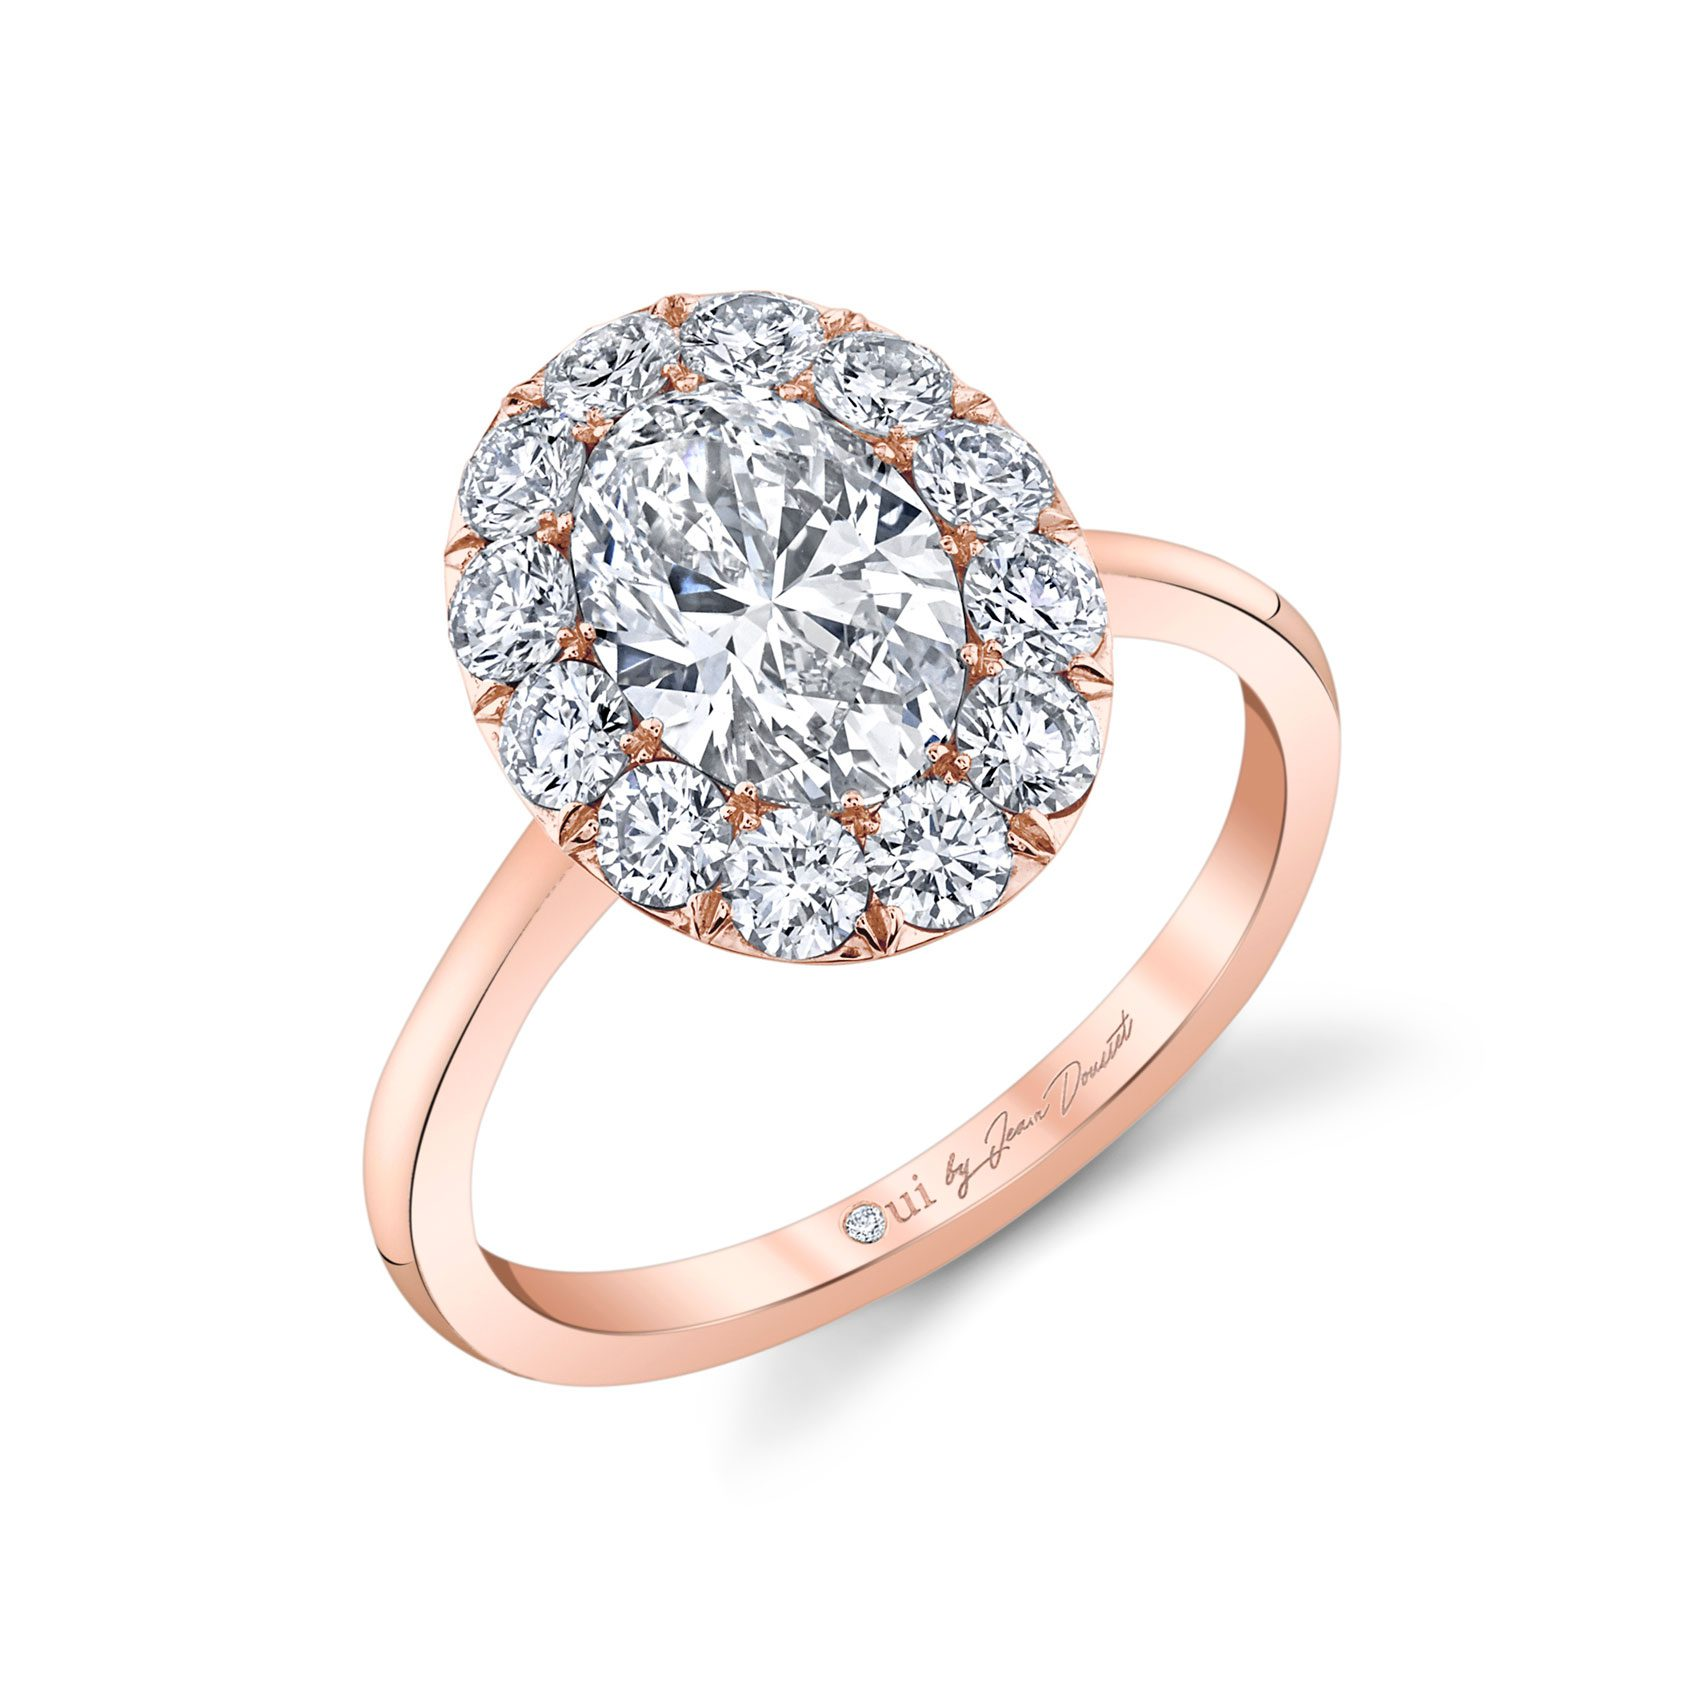 Colette Oval Seamless Solitaire® Engagement Ring with a solid band in 18k Rose Gold Profile View by Oui by Jean Dousset